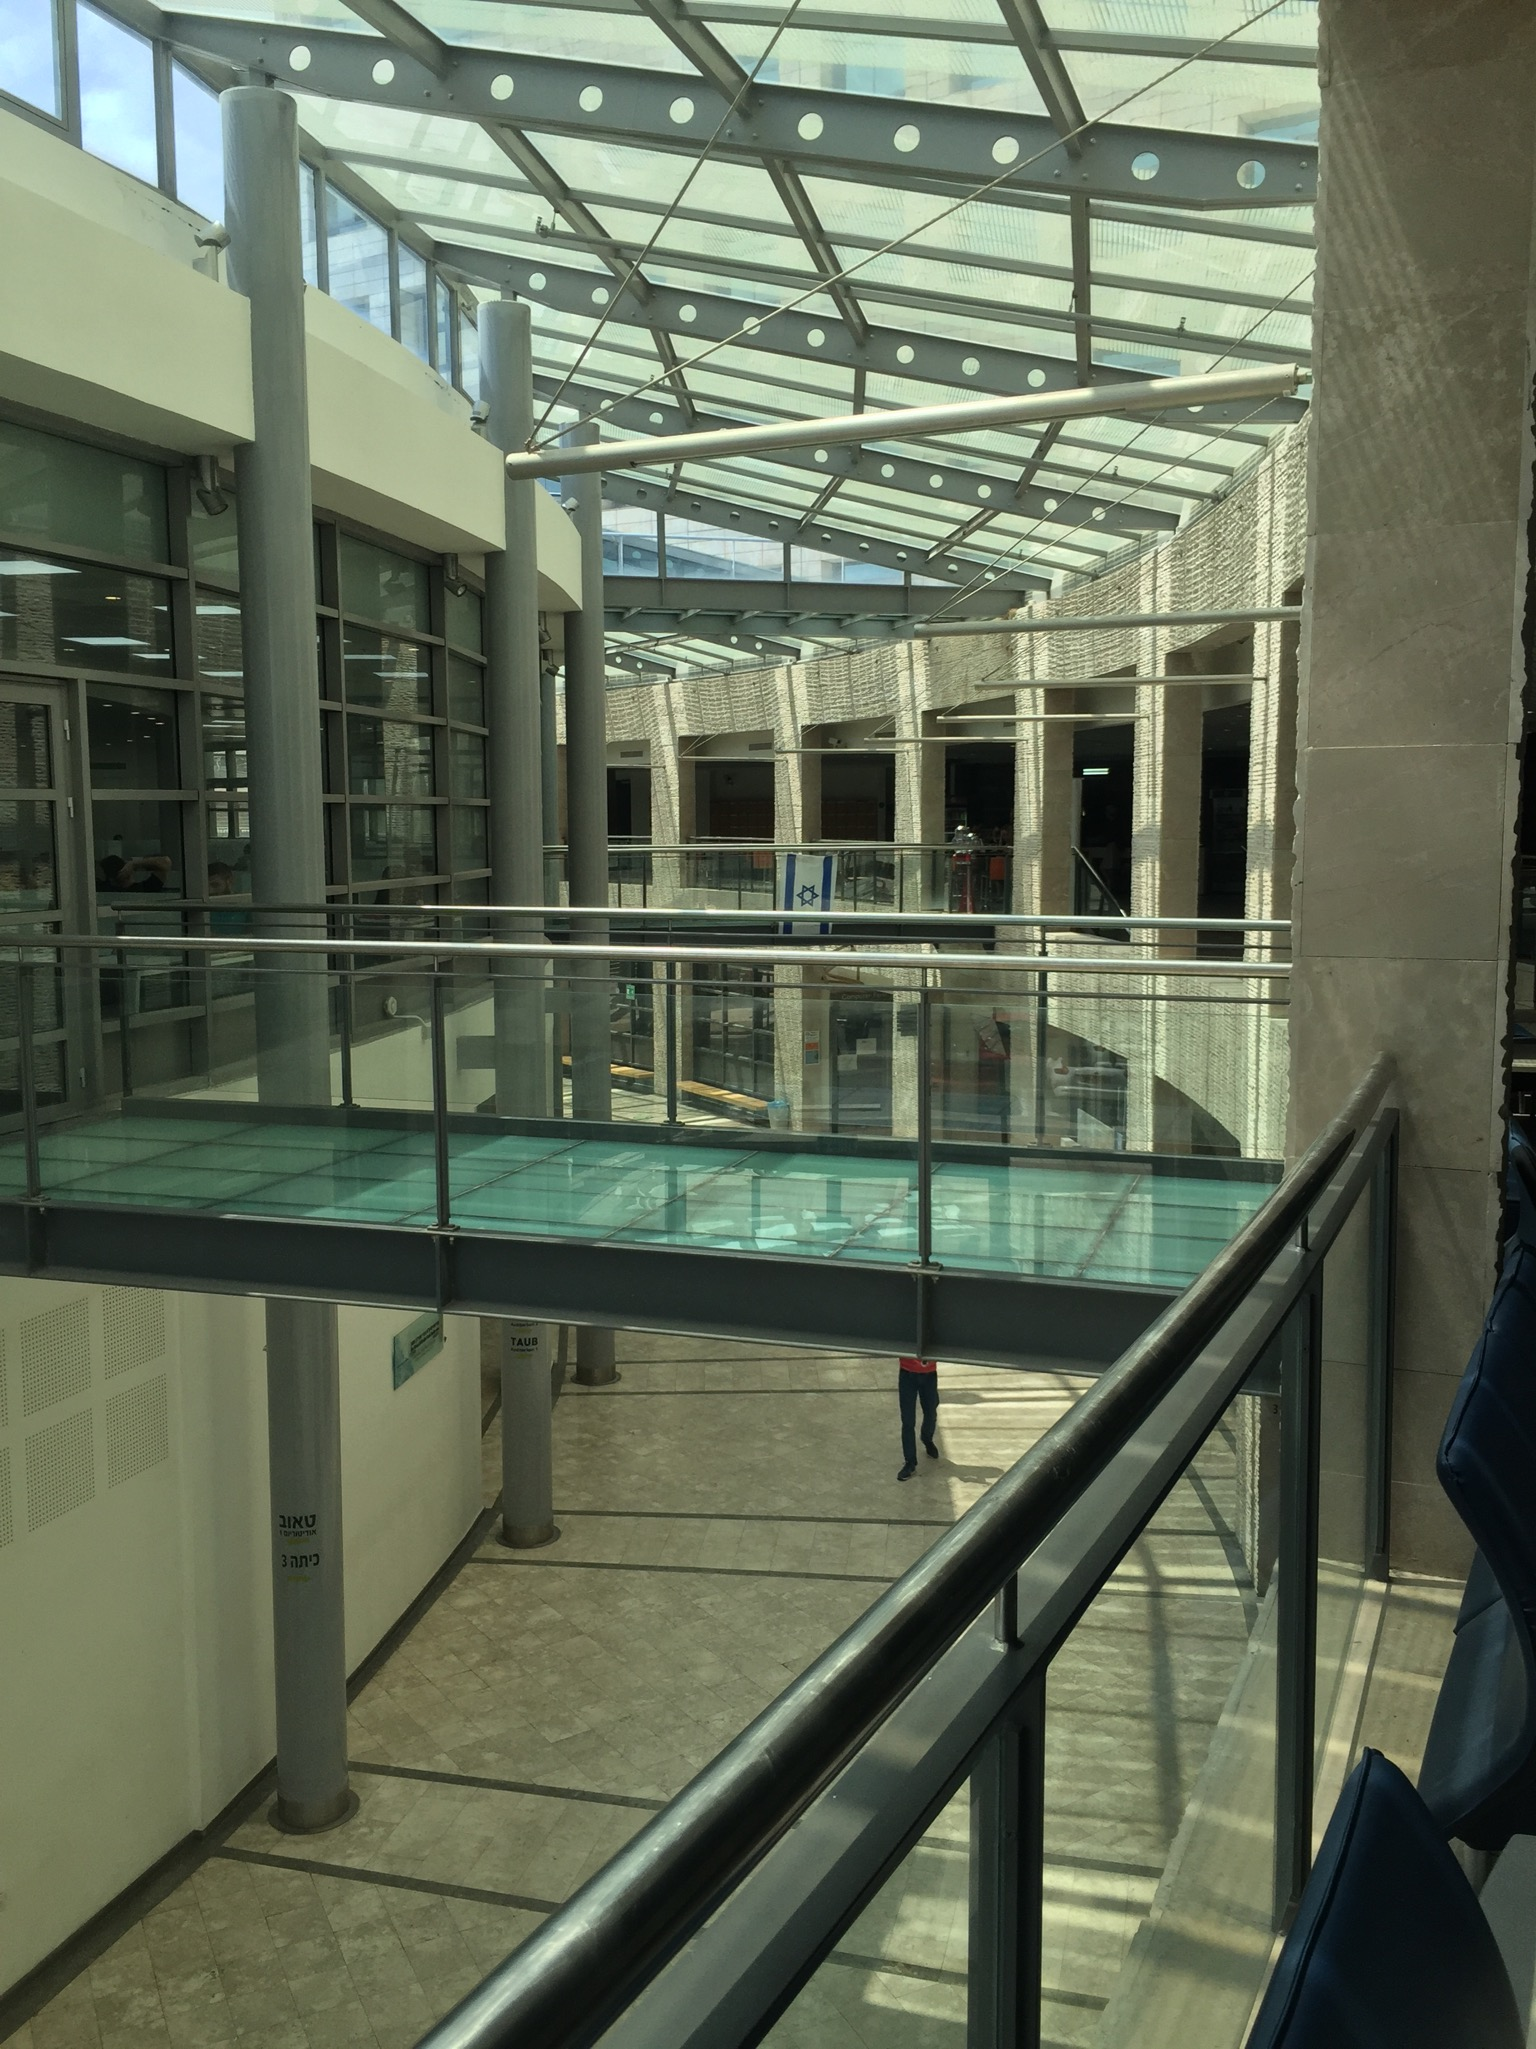 Atrium view from the CS department at Technion Israel Institute of Technology.